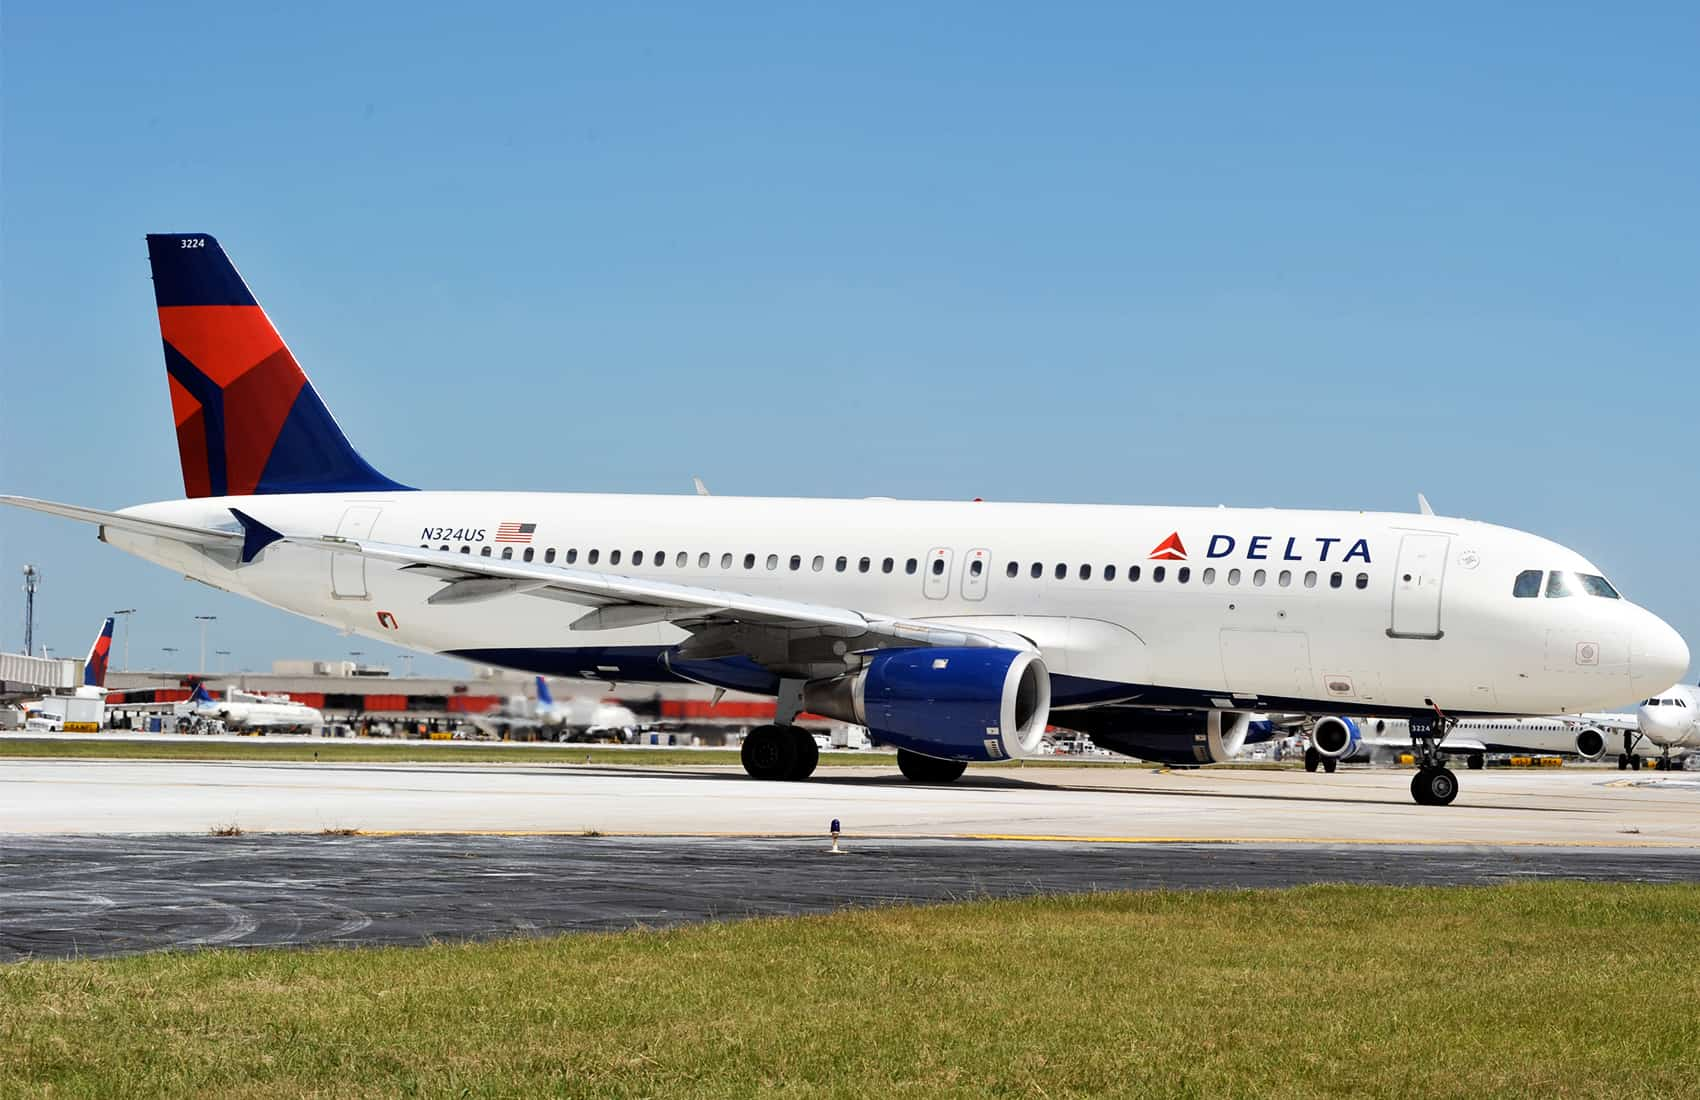 Delta Airlines A320 aircraft